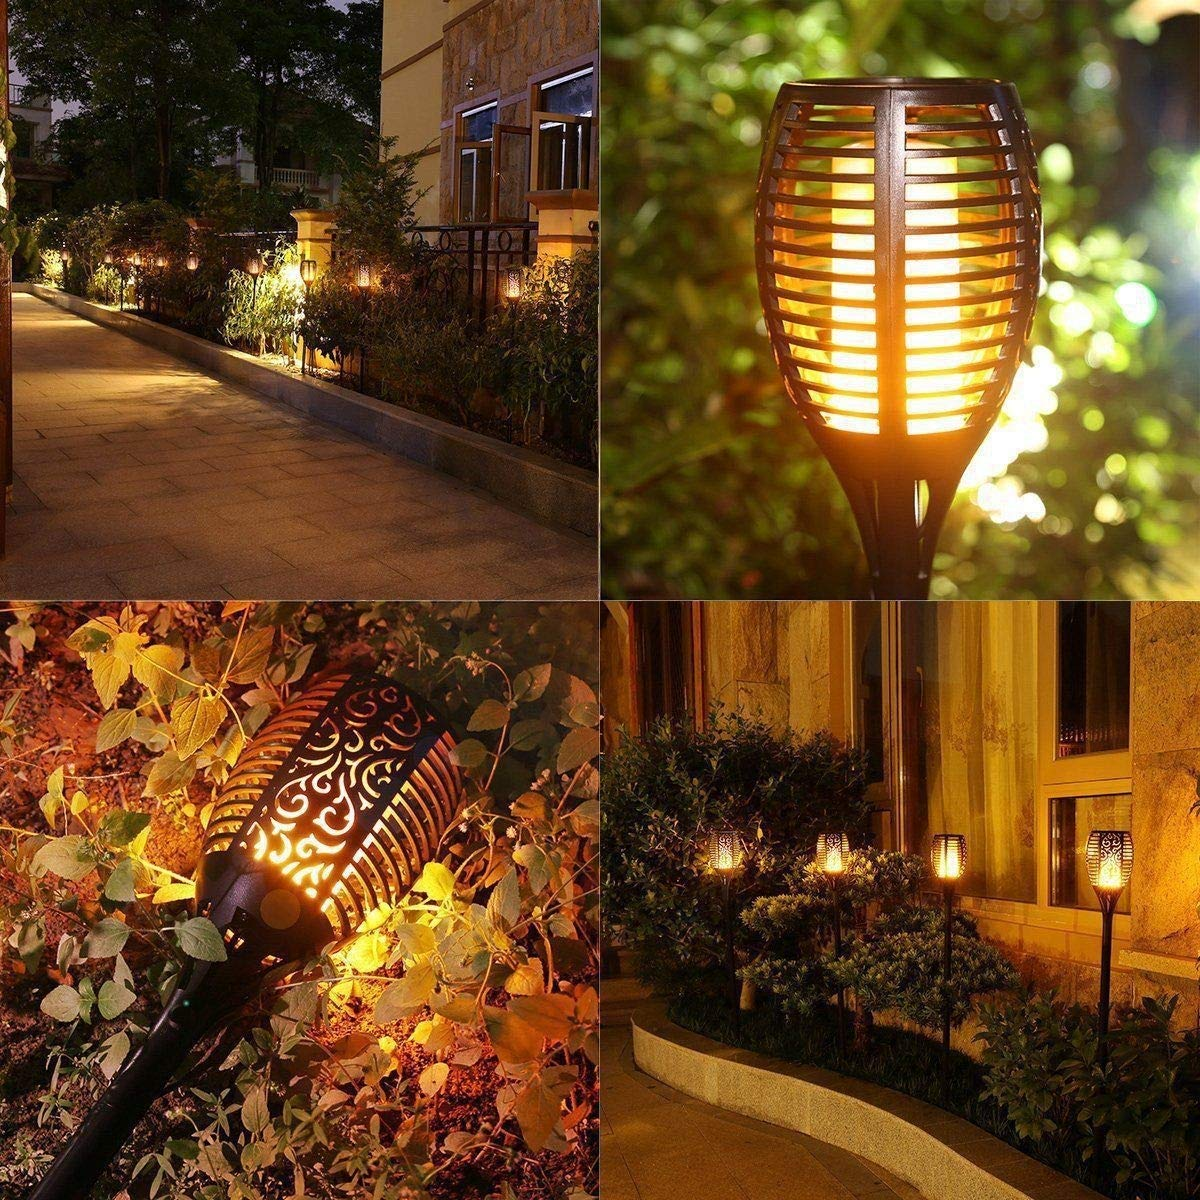 Excellent bright light Flickering Dancing Flames, 96LED IP65 Raincoat Outside Solar Landscape Lights for Garden Patio Yard Landscape Wall Path Festival Decor Solar Torch Lights, Solar Garden Idle